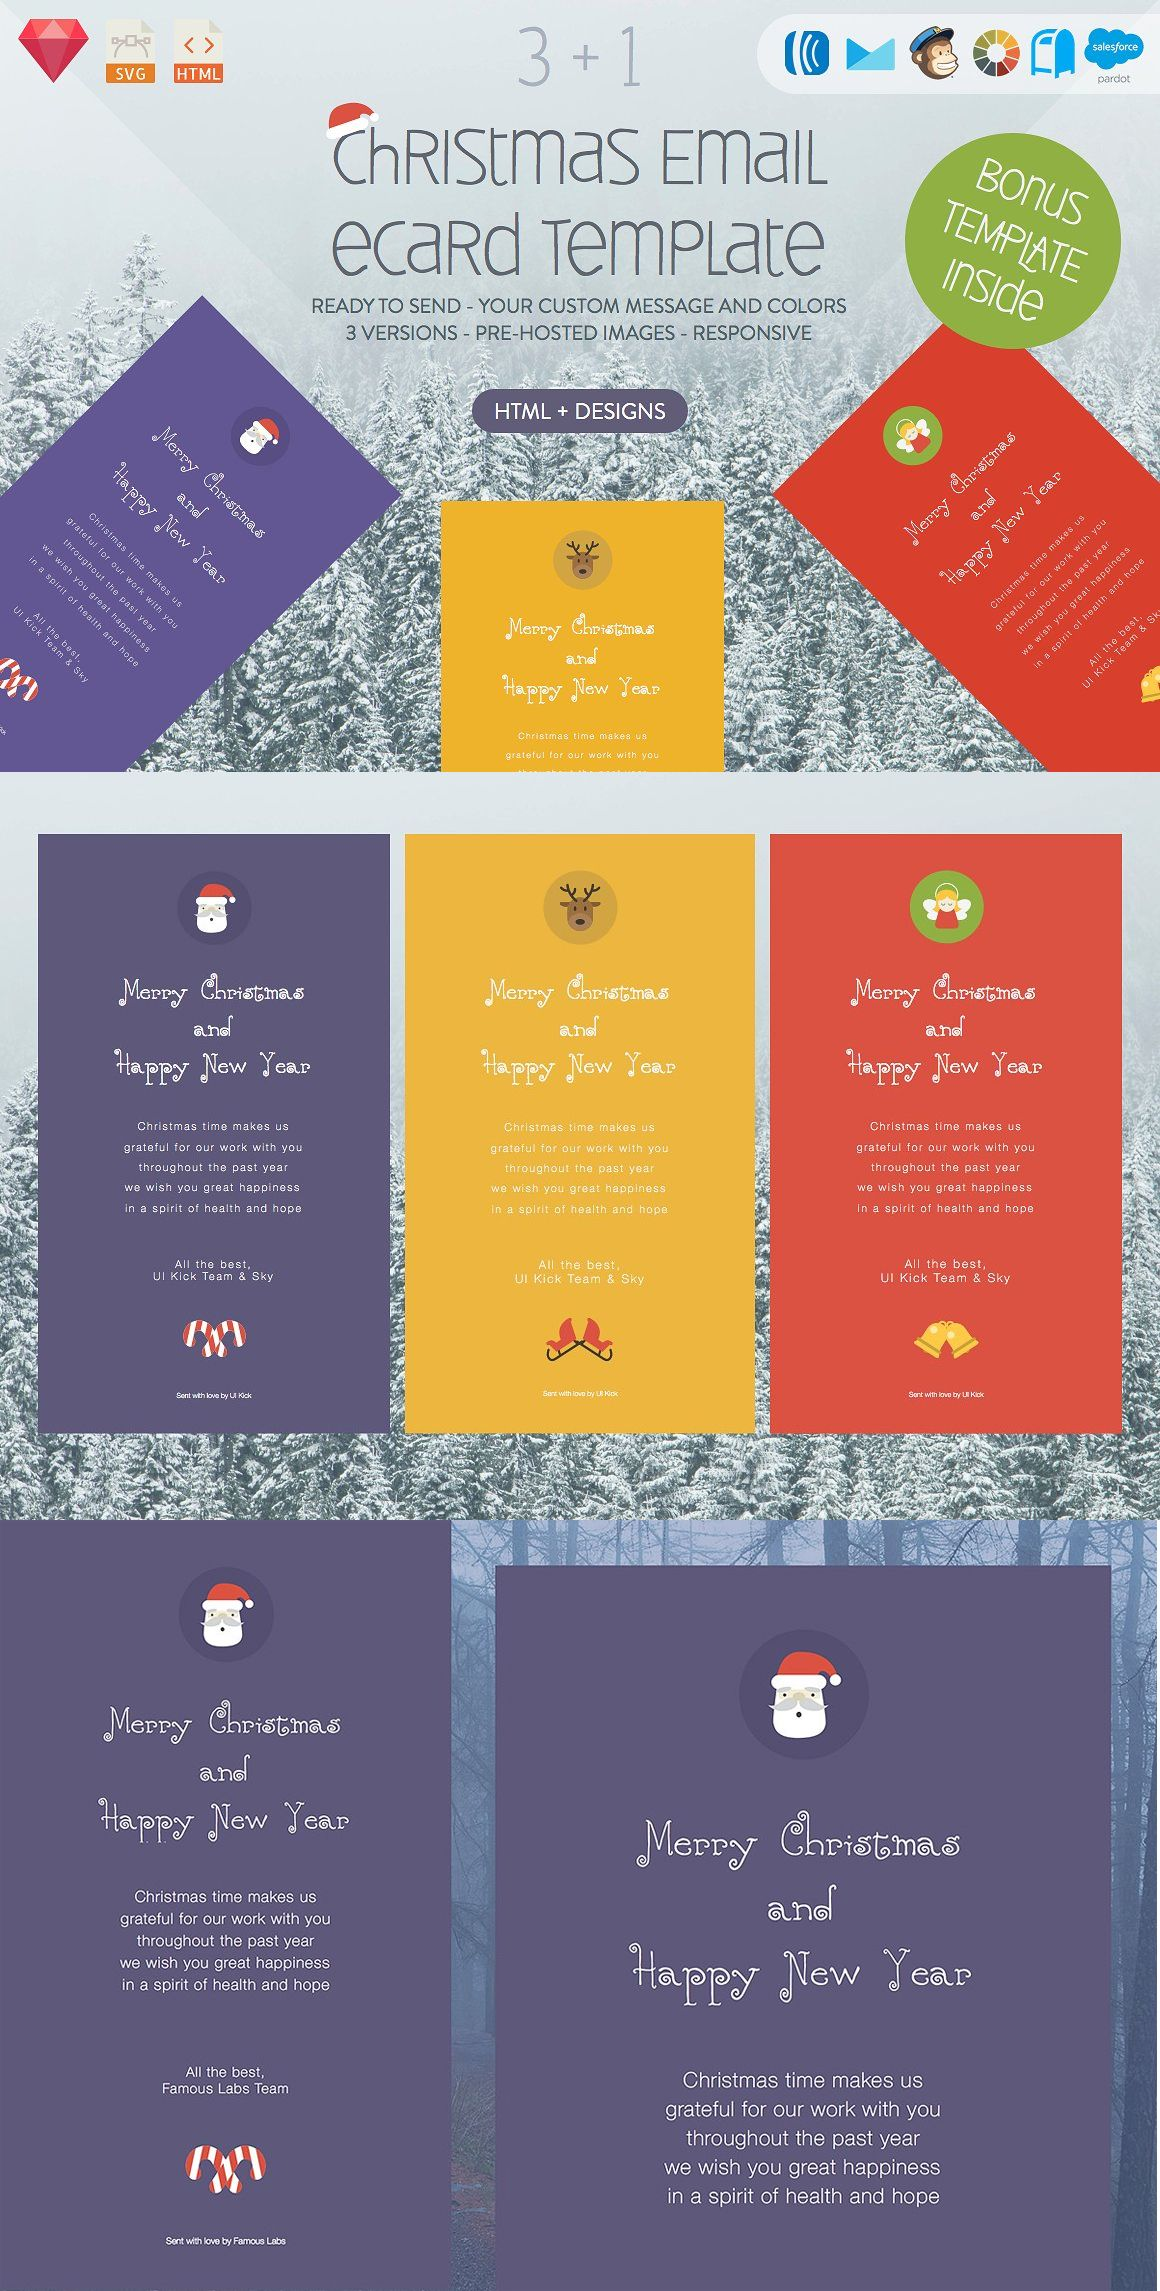 Email/eCard (HTML+DESIGNS)